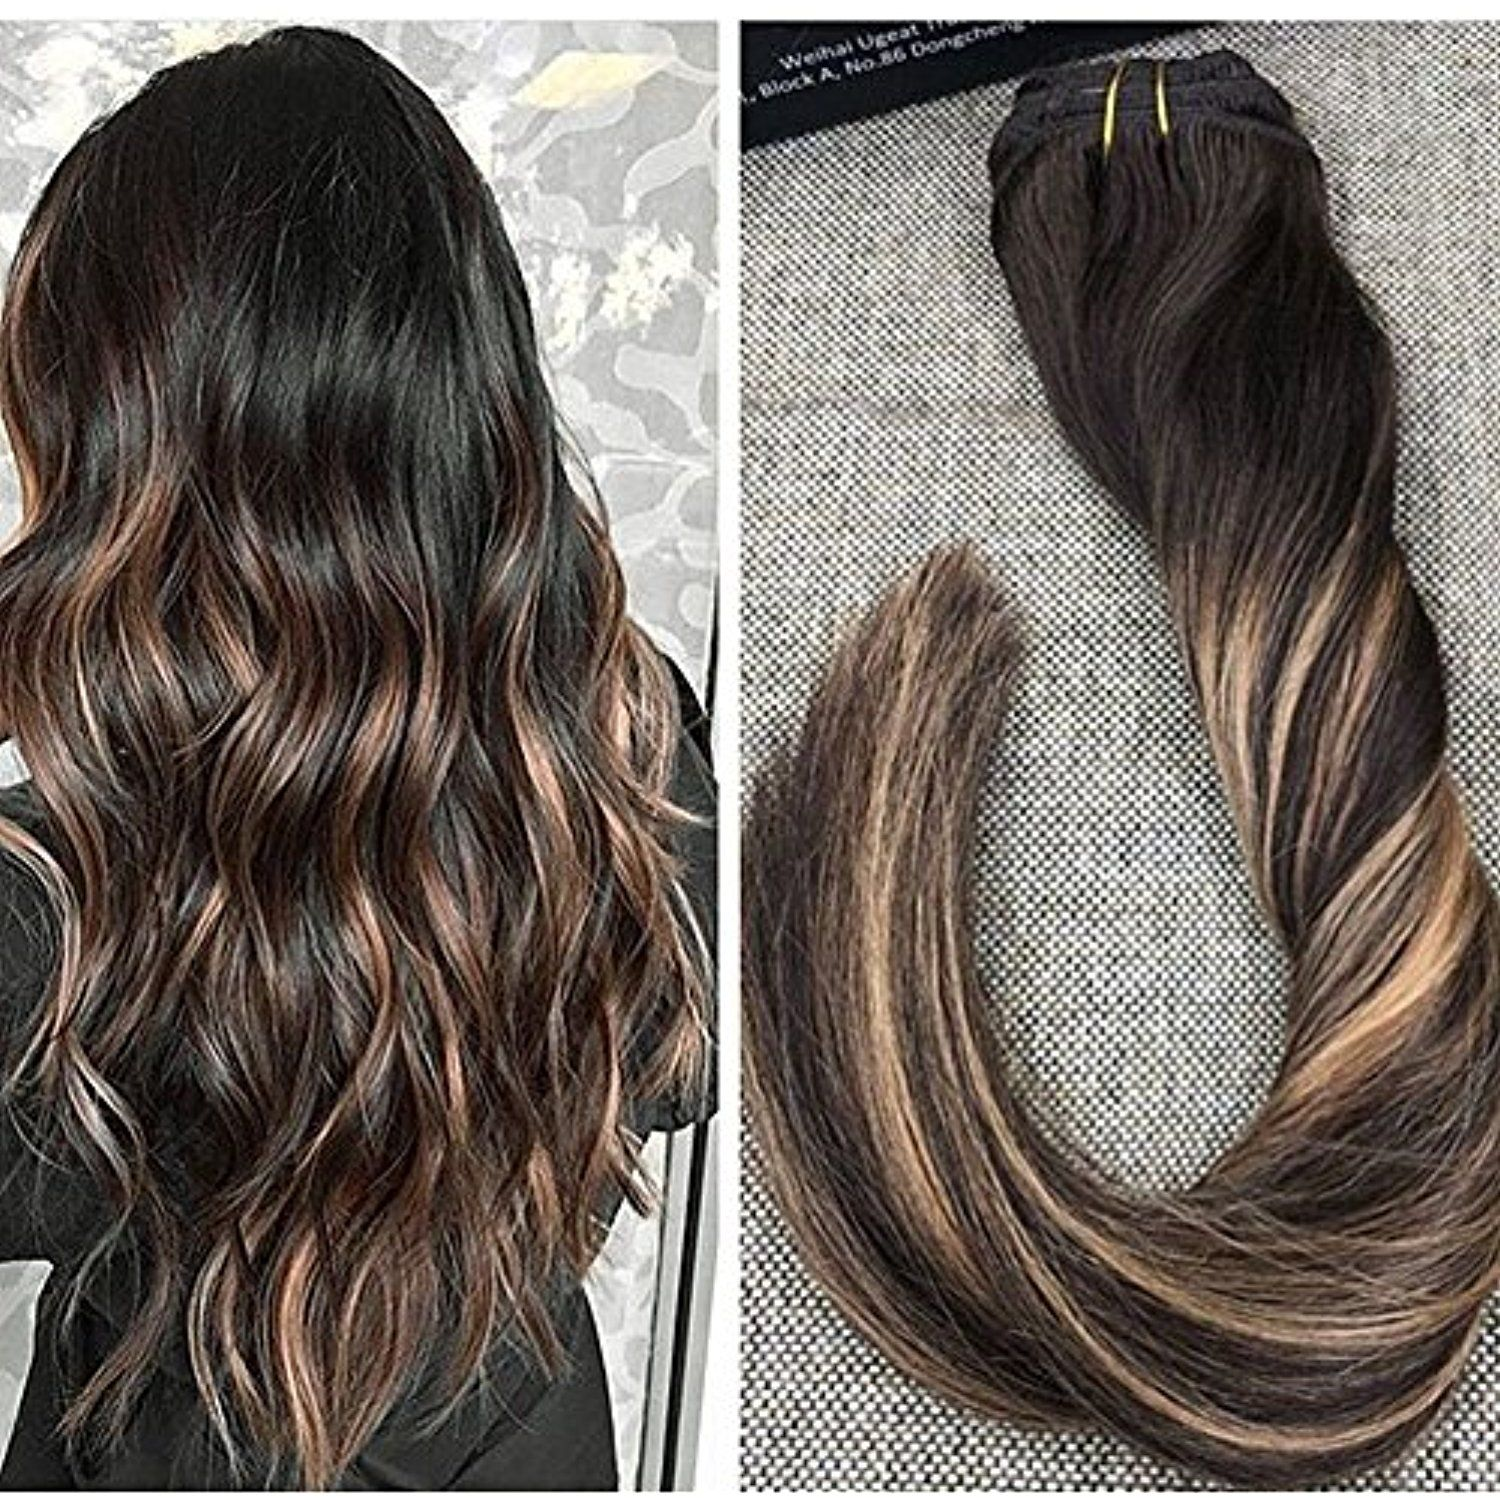 Ugeat 14 Inch 7pcs 120 Gram Balayage Ombre Clip In Real Human Hair Extensions Balayage Color Darkest Brown Balayage Hair Hair Color Balayage Balayage Hair Dark